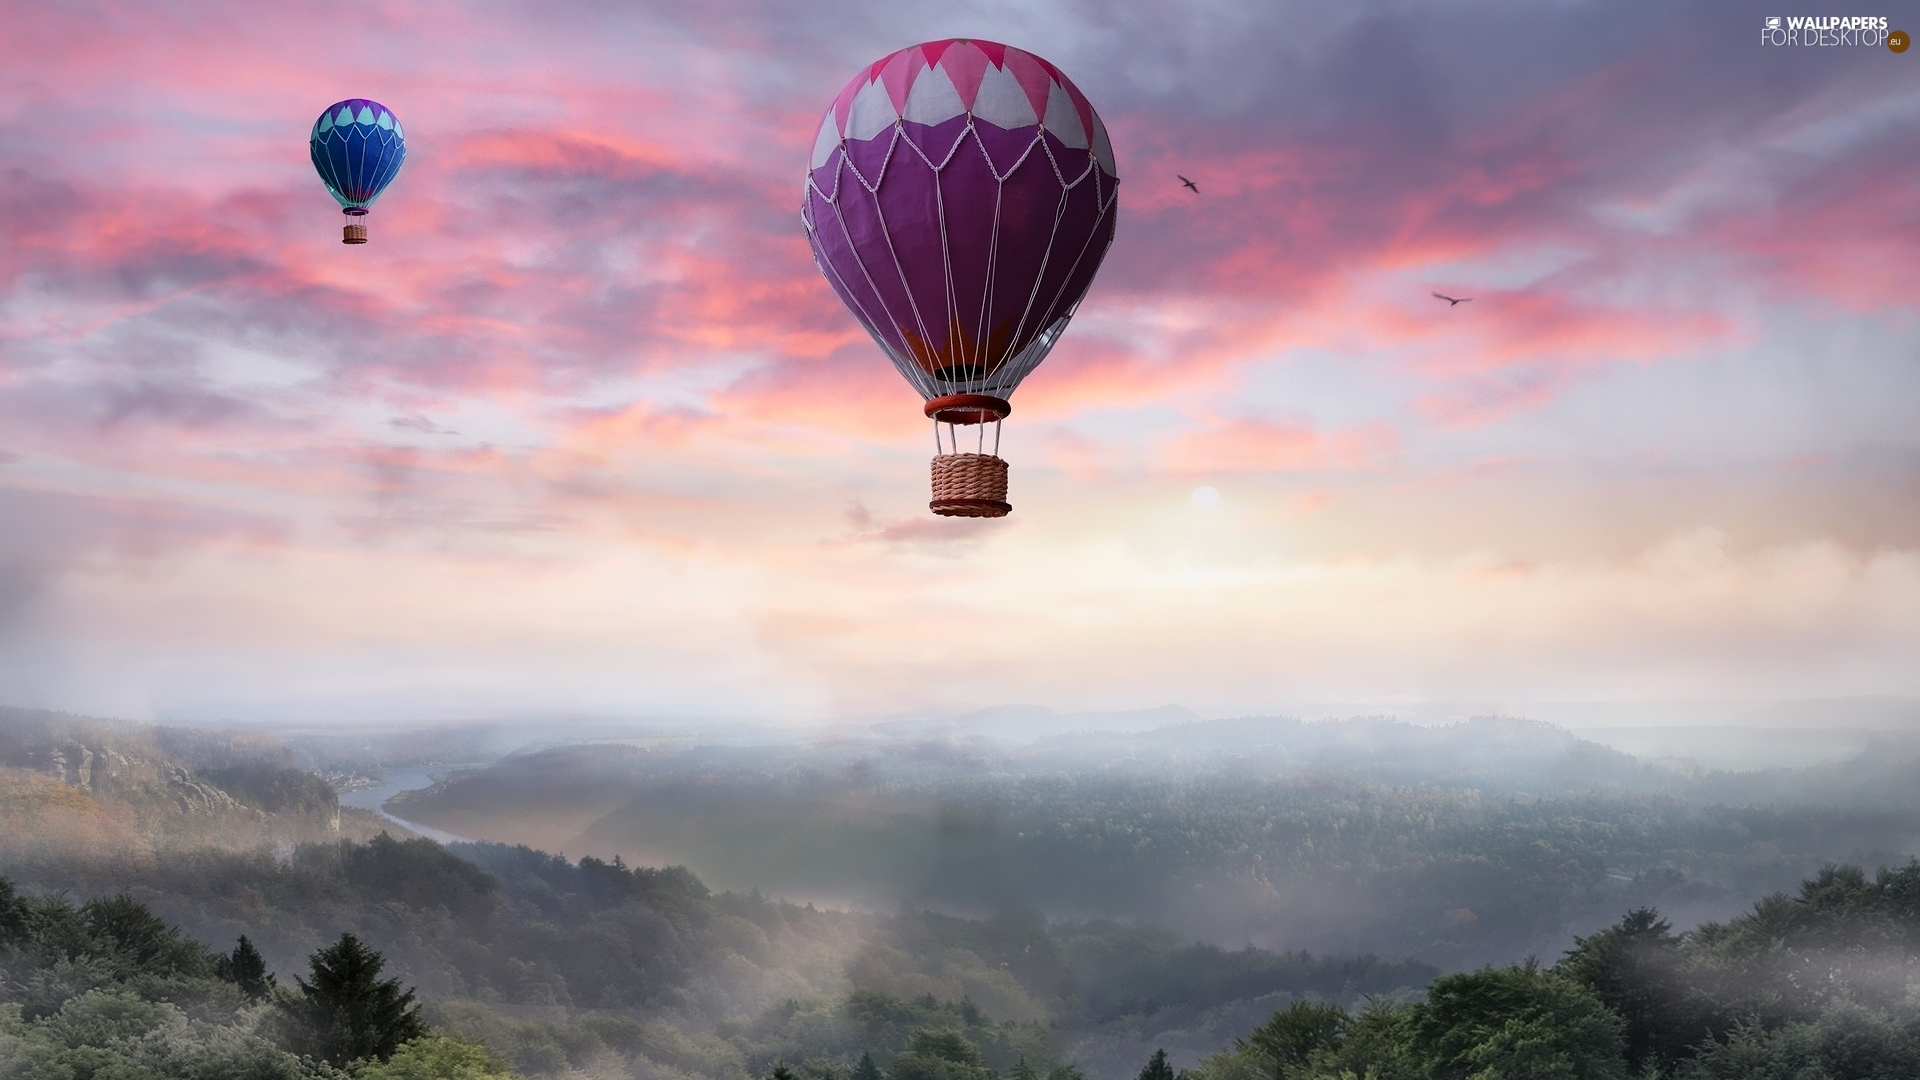 viewes, Mountains, Fog, trees, Balloons, VEGETATION, birds